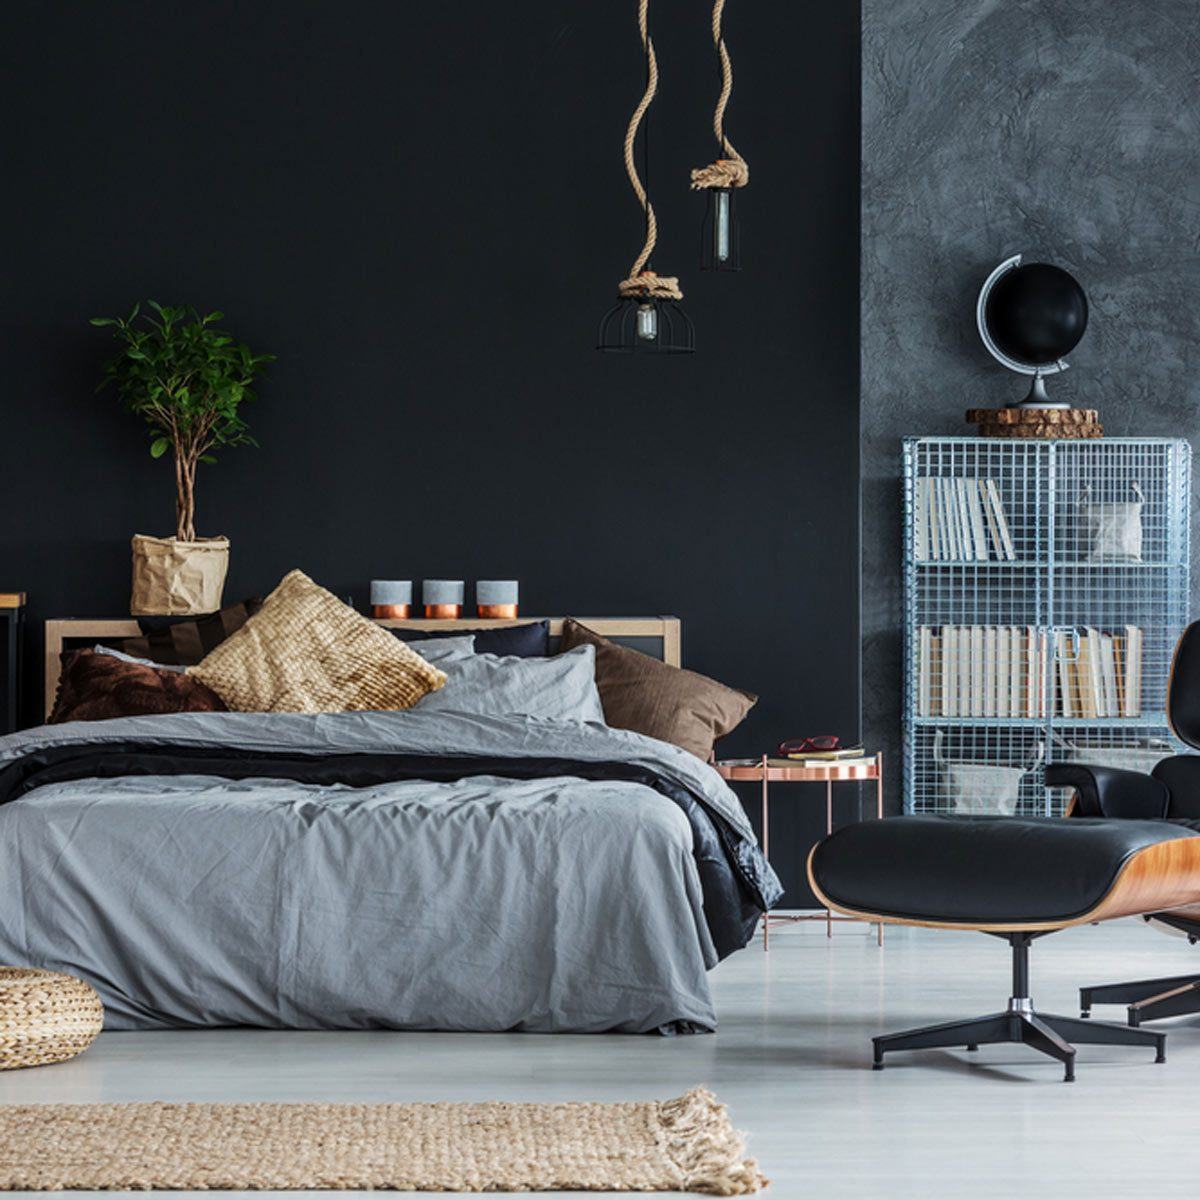 17oct93-2018_675137404_02 black bedroom color wall masculine modern minimalist